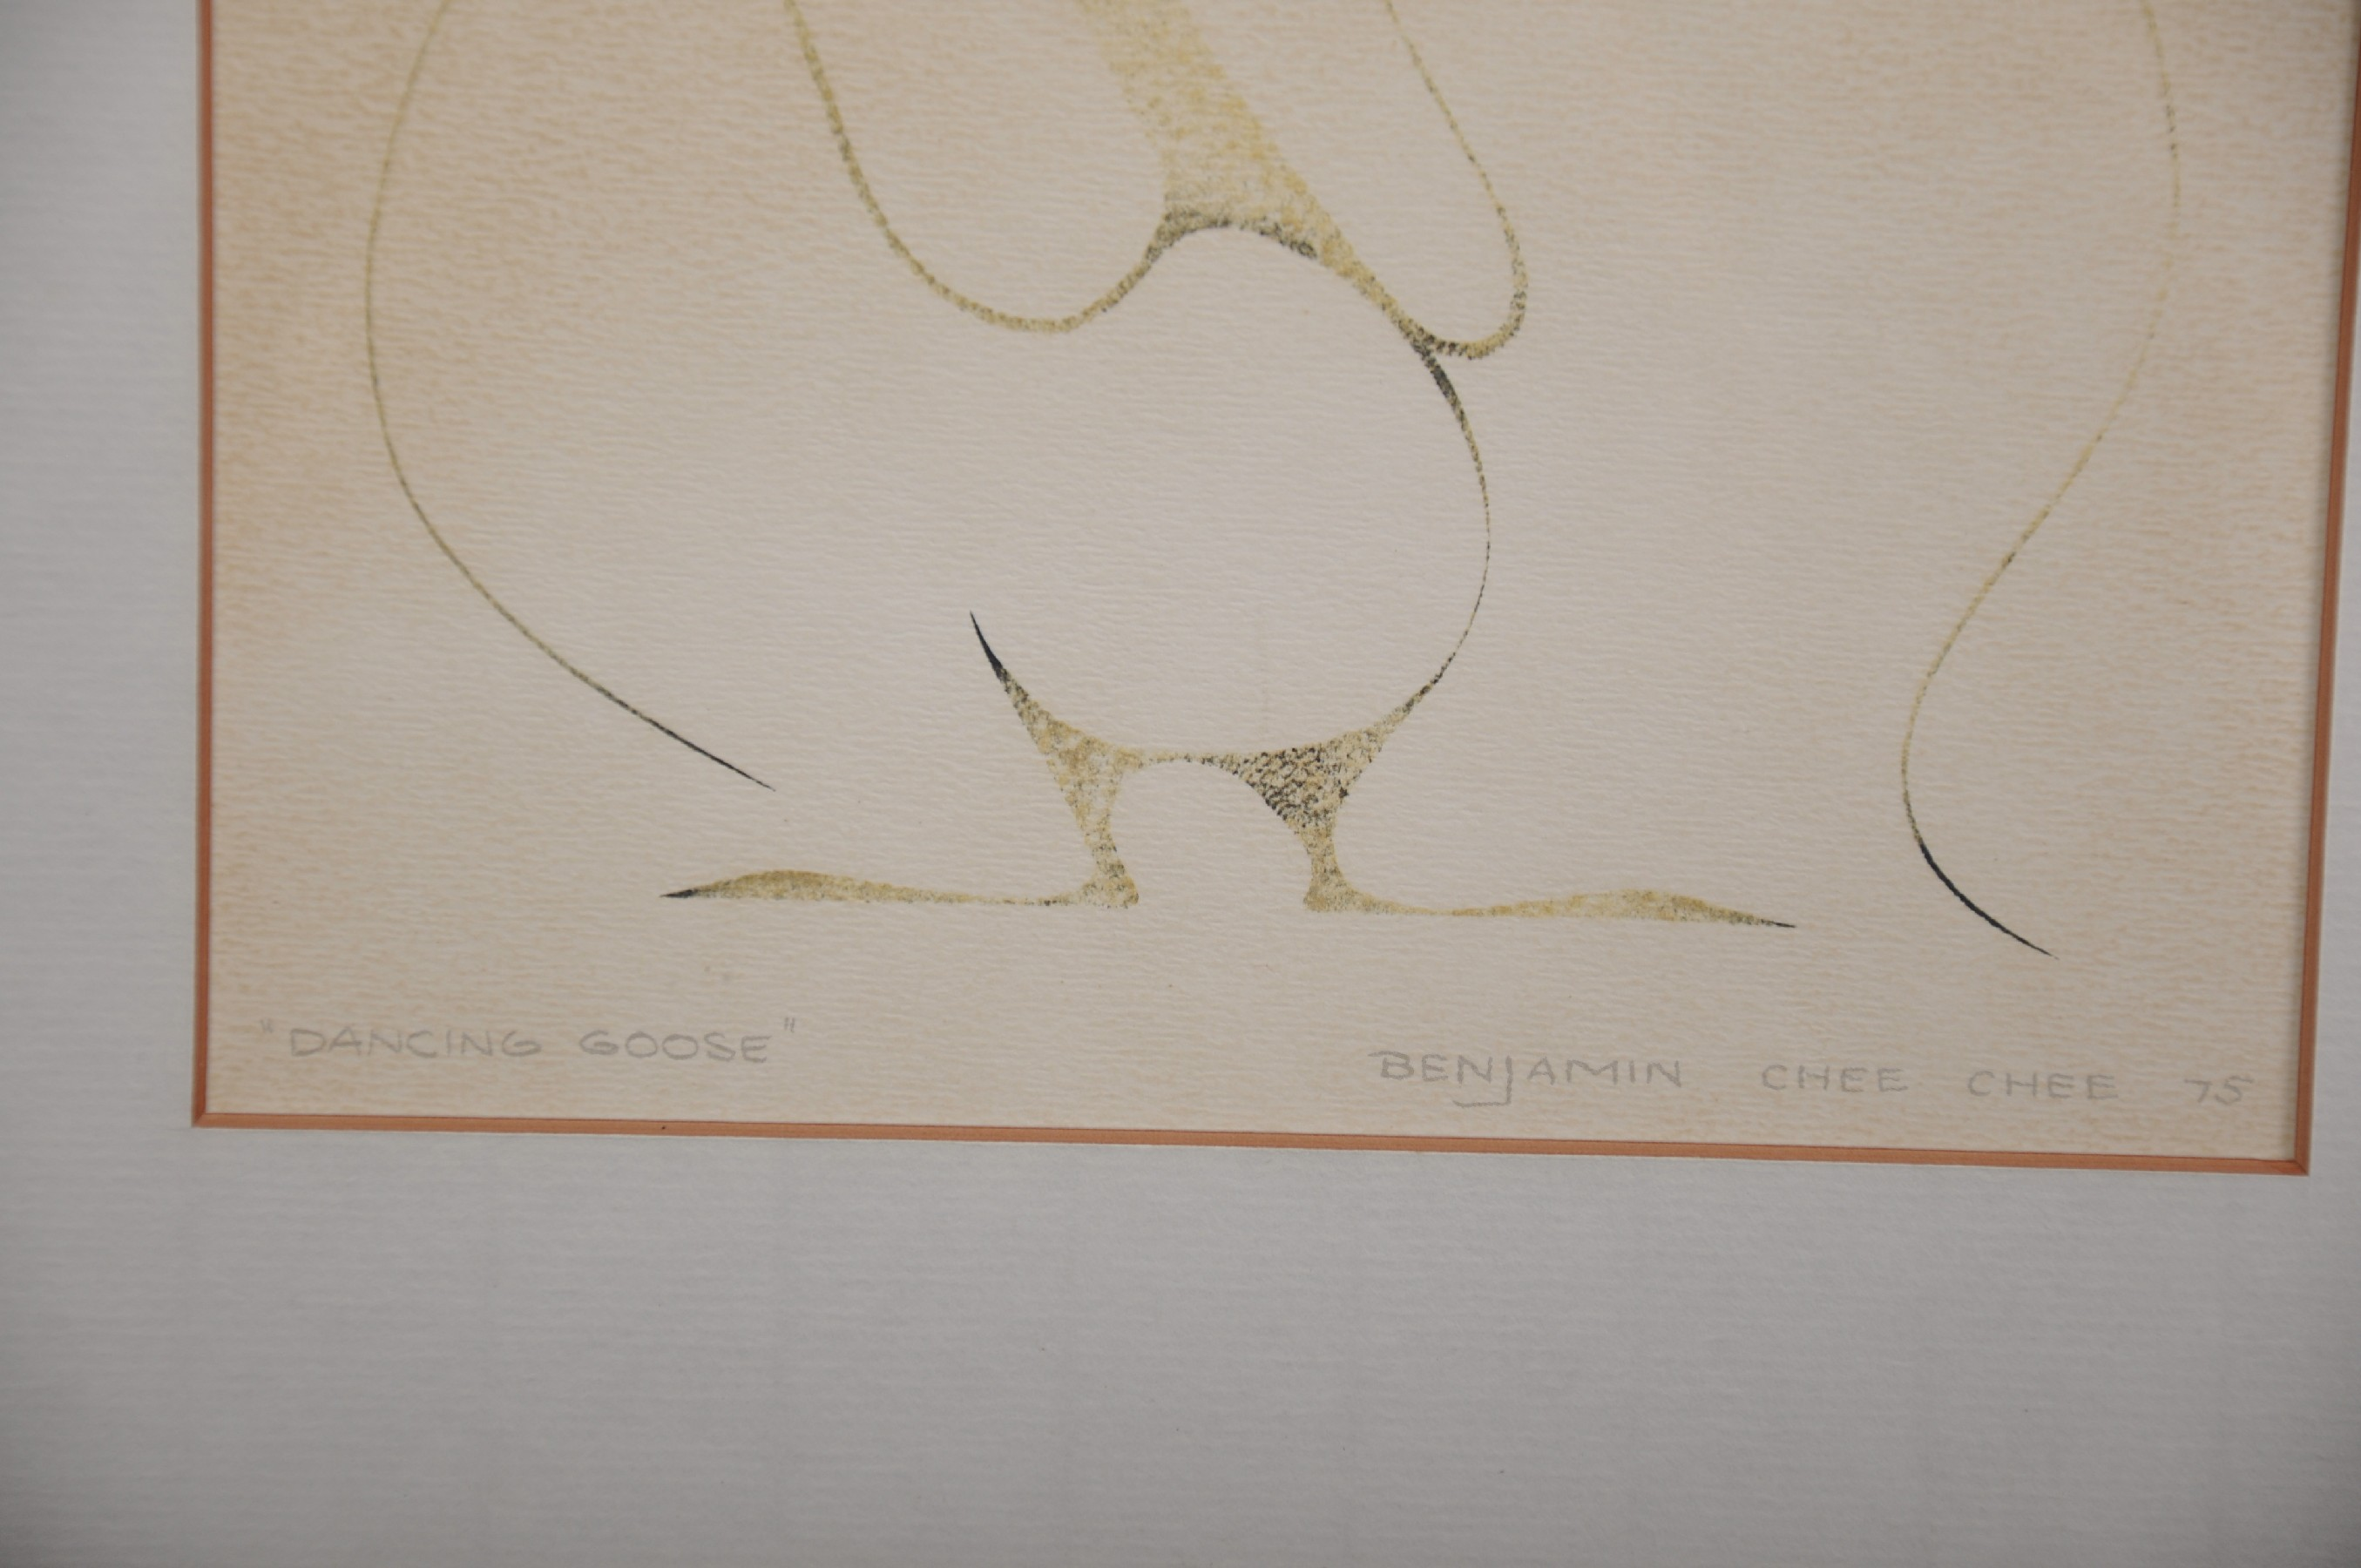 """Benjamin Chee Chee (1944-1977) Canadian. """"Dancing Goose"""", Lithograph, Signed, Inscribed and Dated ' - Image 3 of 4"""